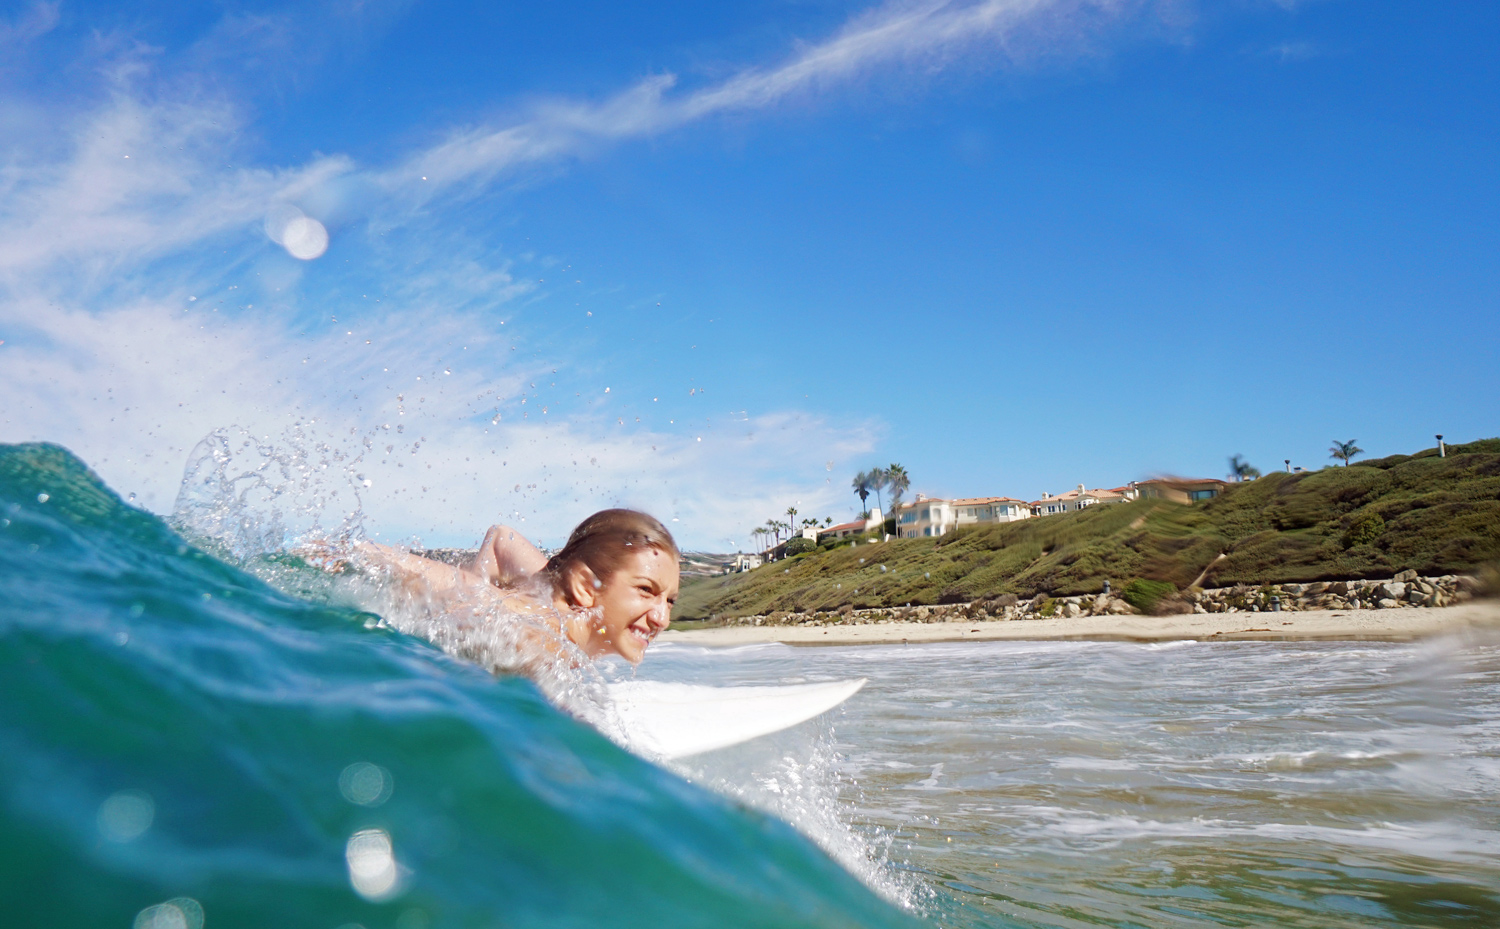 It's not about the wave count -- it's about making the waves count